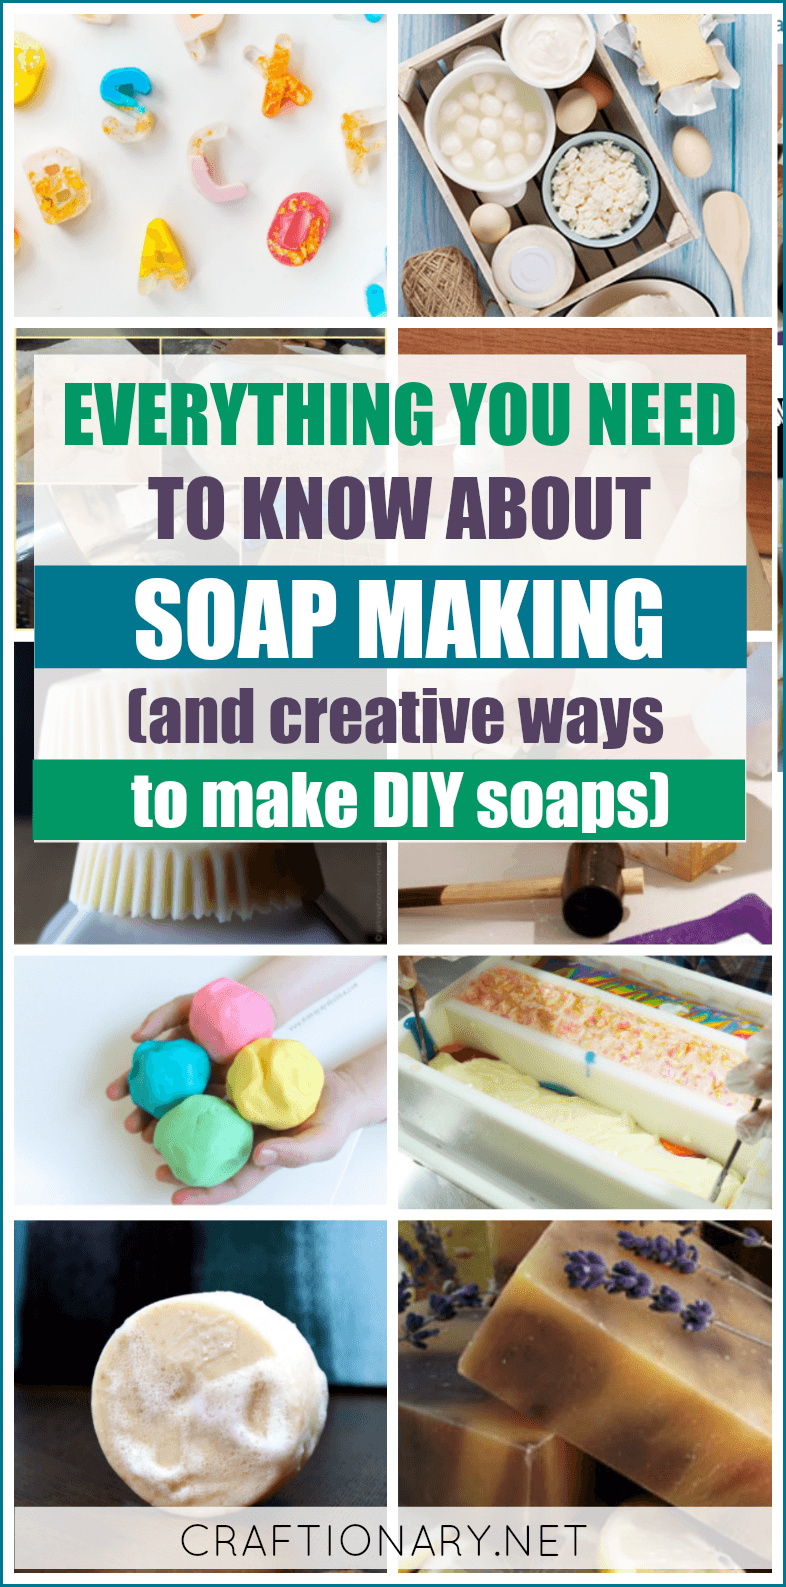 DIY soap making techniques and instructions about cold process along with tutorials to make DIY soaps